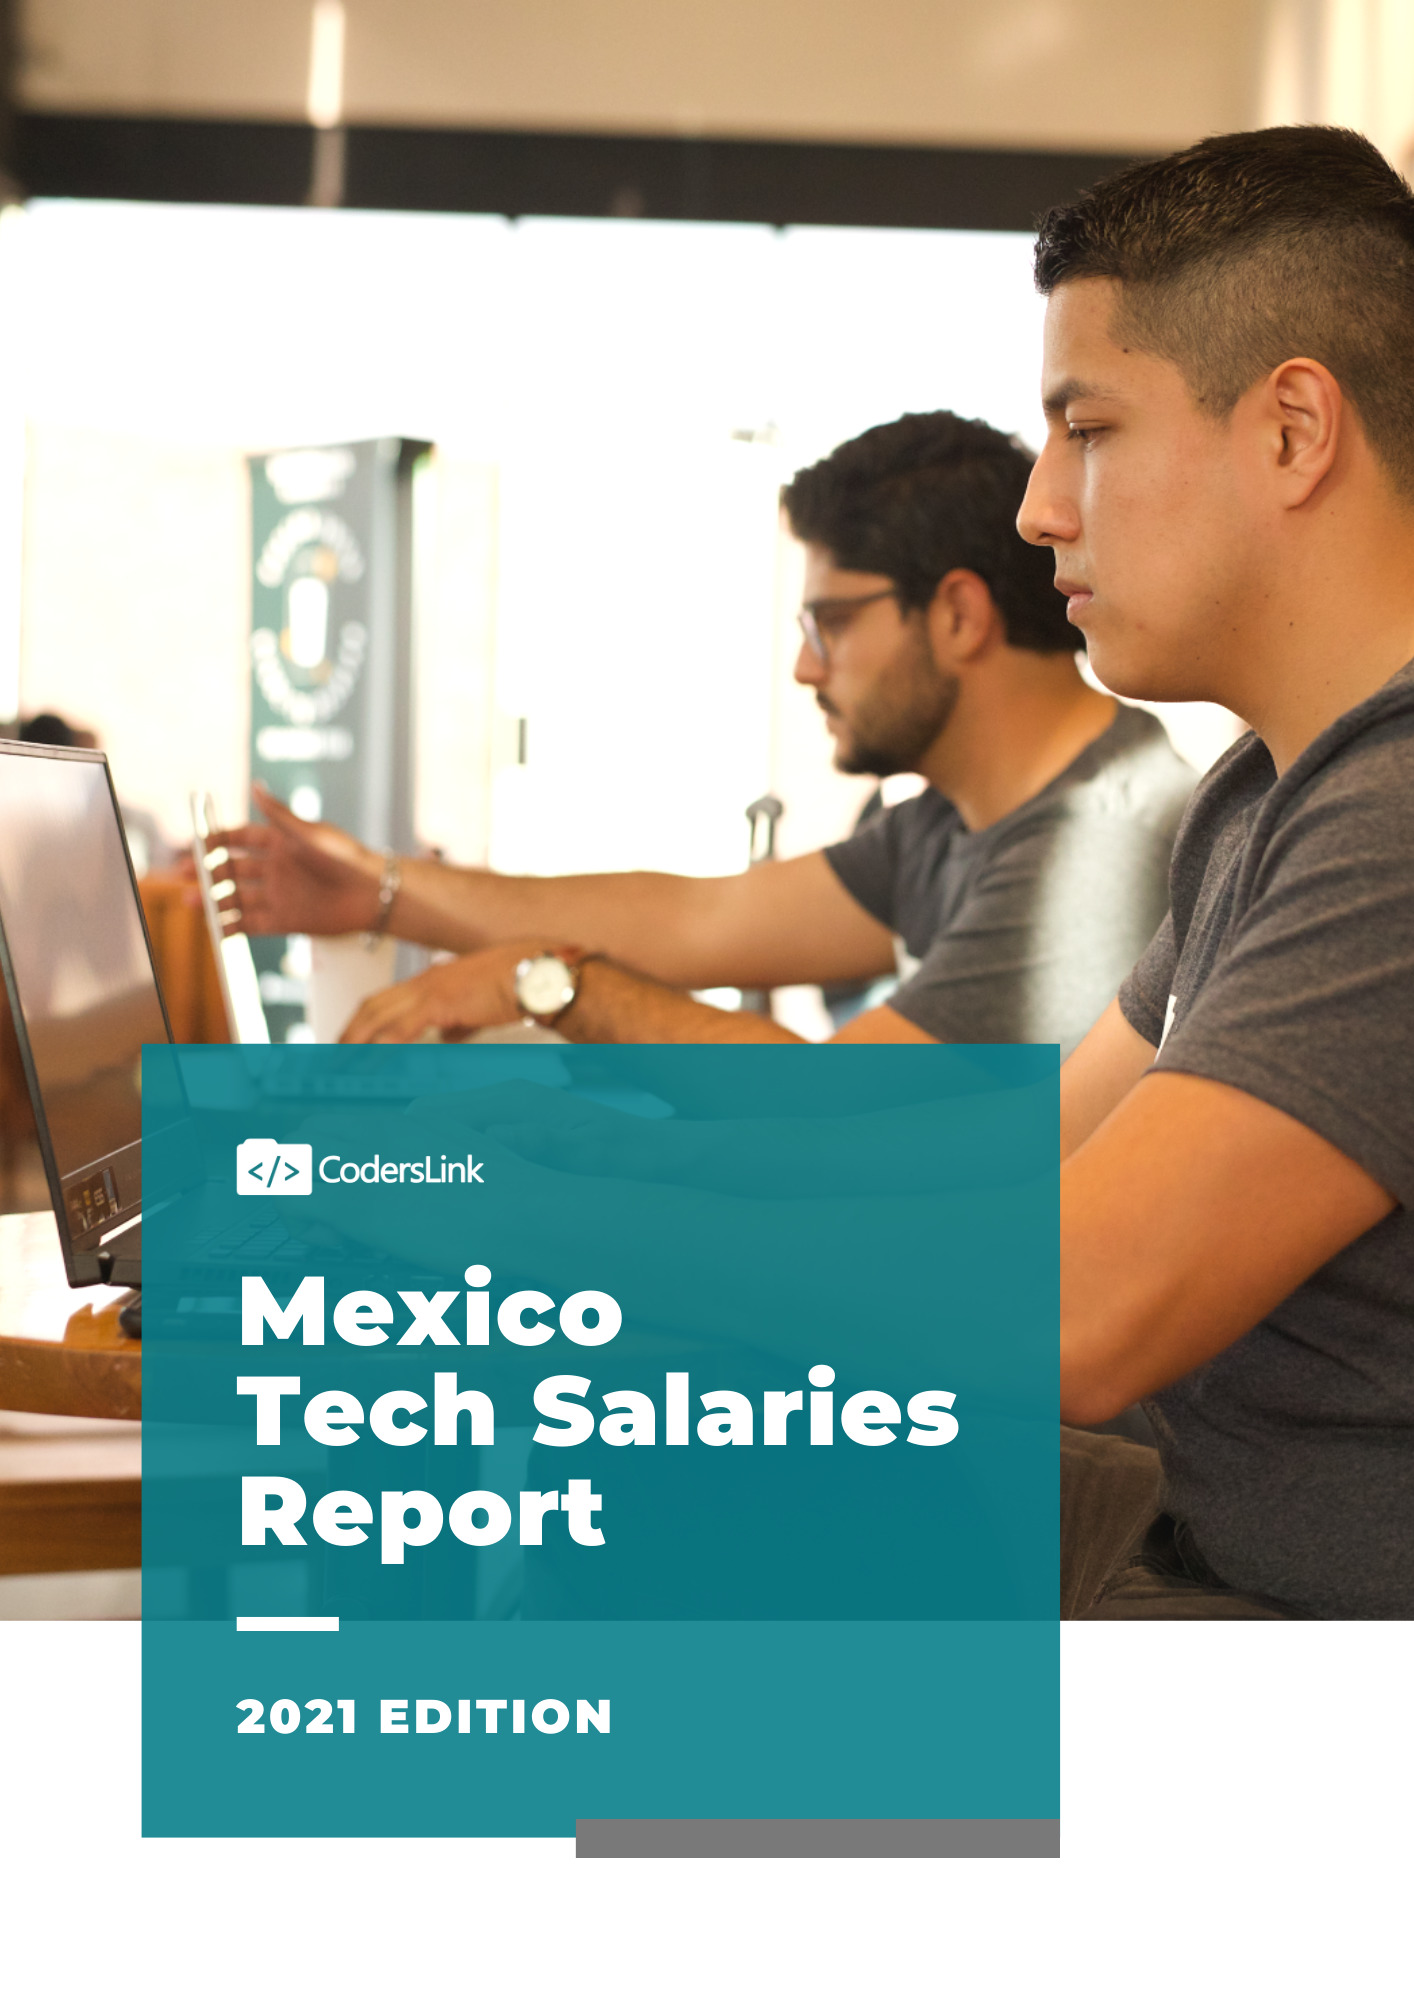 tech salaries in mexico report 2021 edition cover